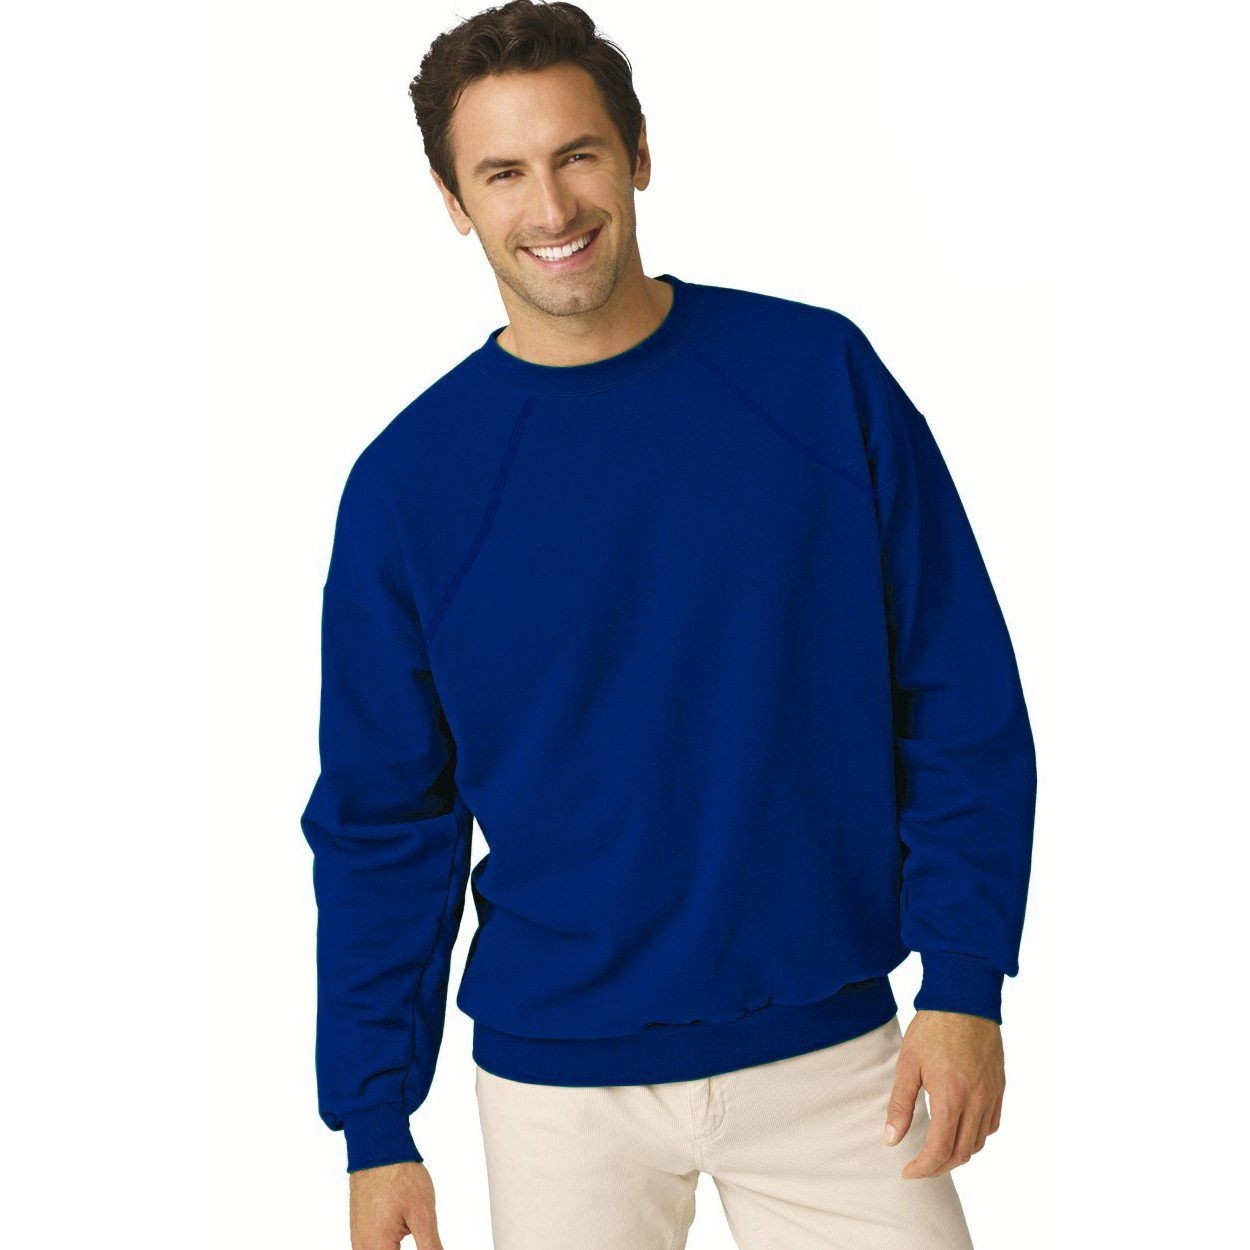 Demy Long Sleeve Crew Neck Sweat Shirt Men's Sweat Shirt Image Royal L